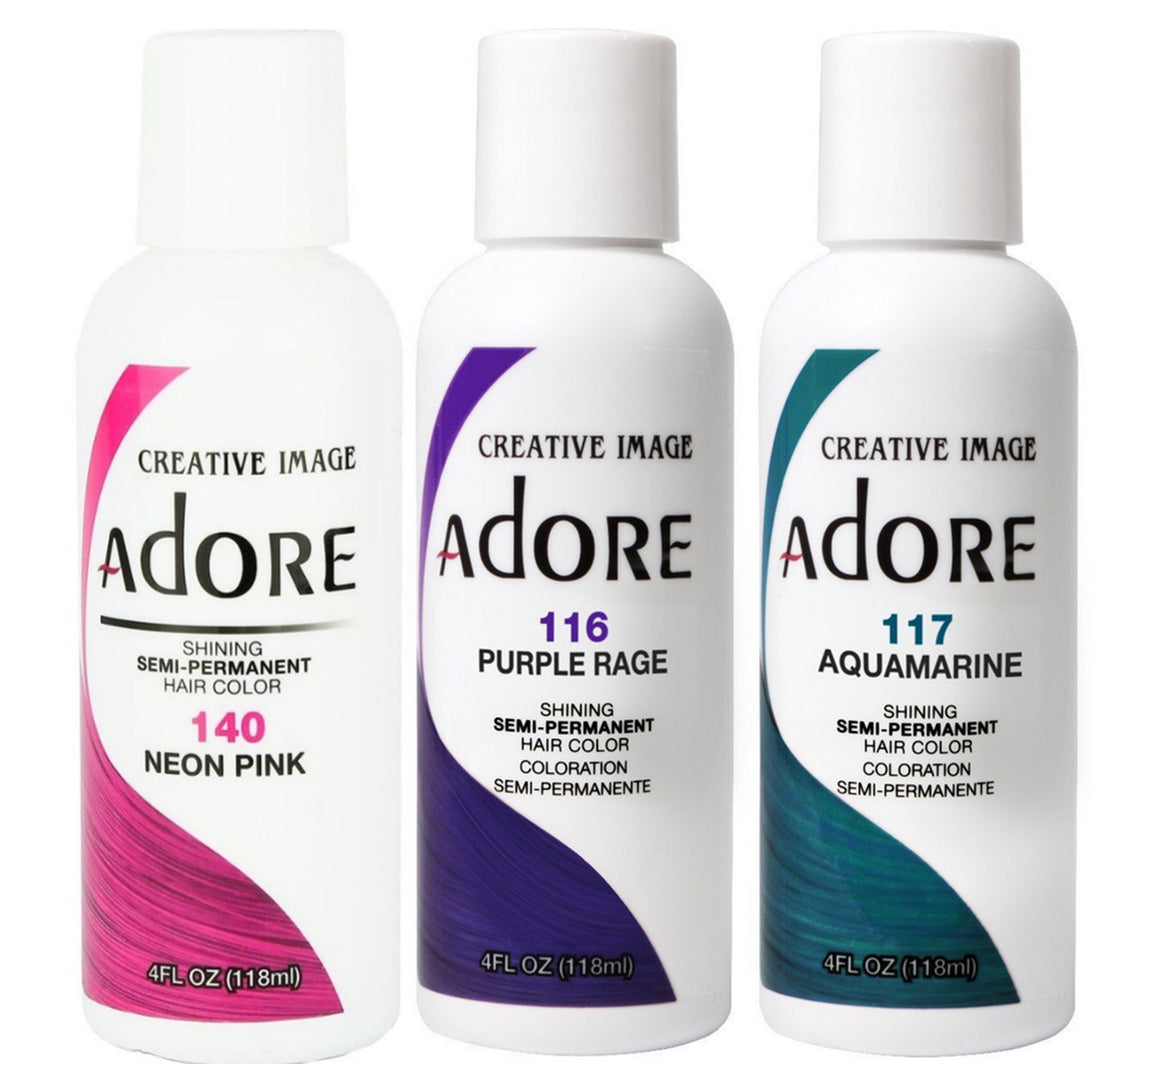 Adore Semi-Permanent Hair Color - Hair Crown Beauty Supply